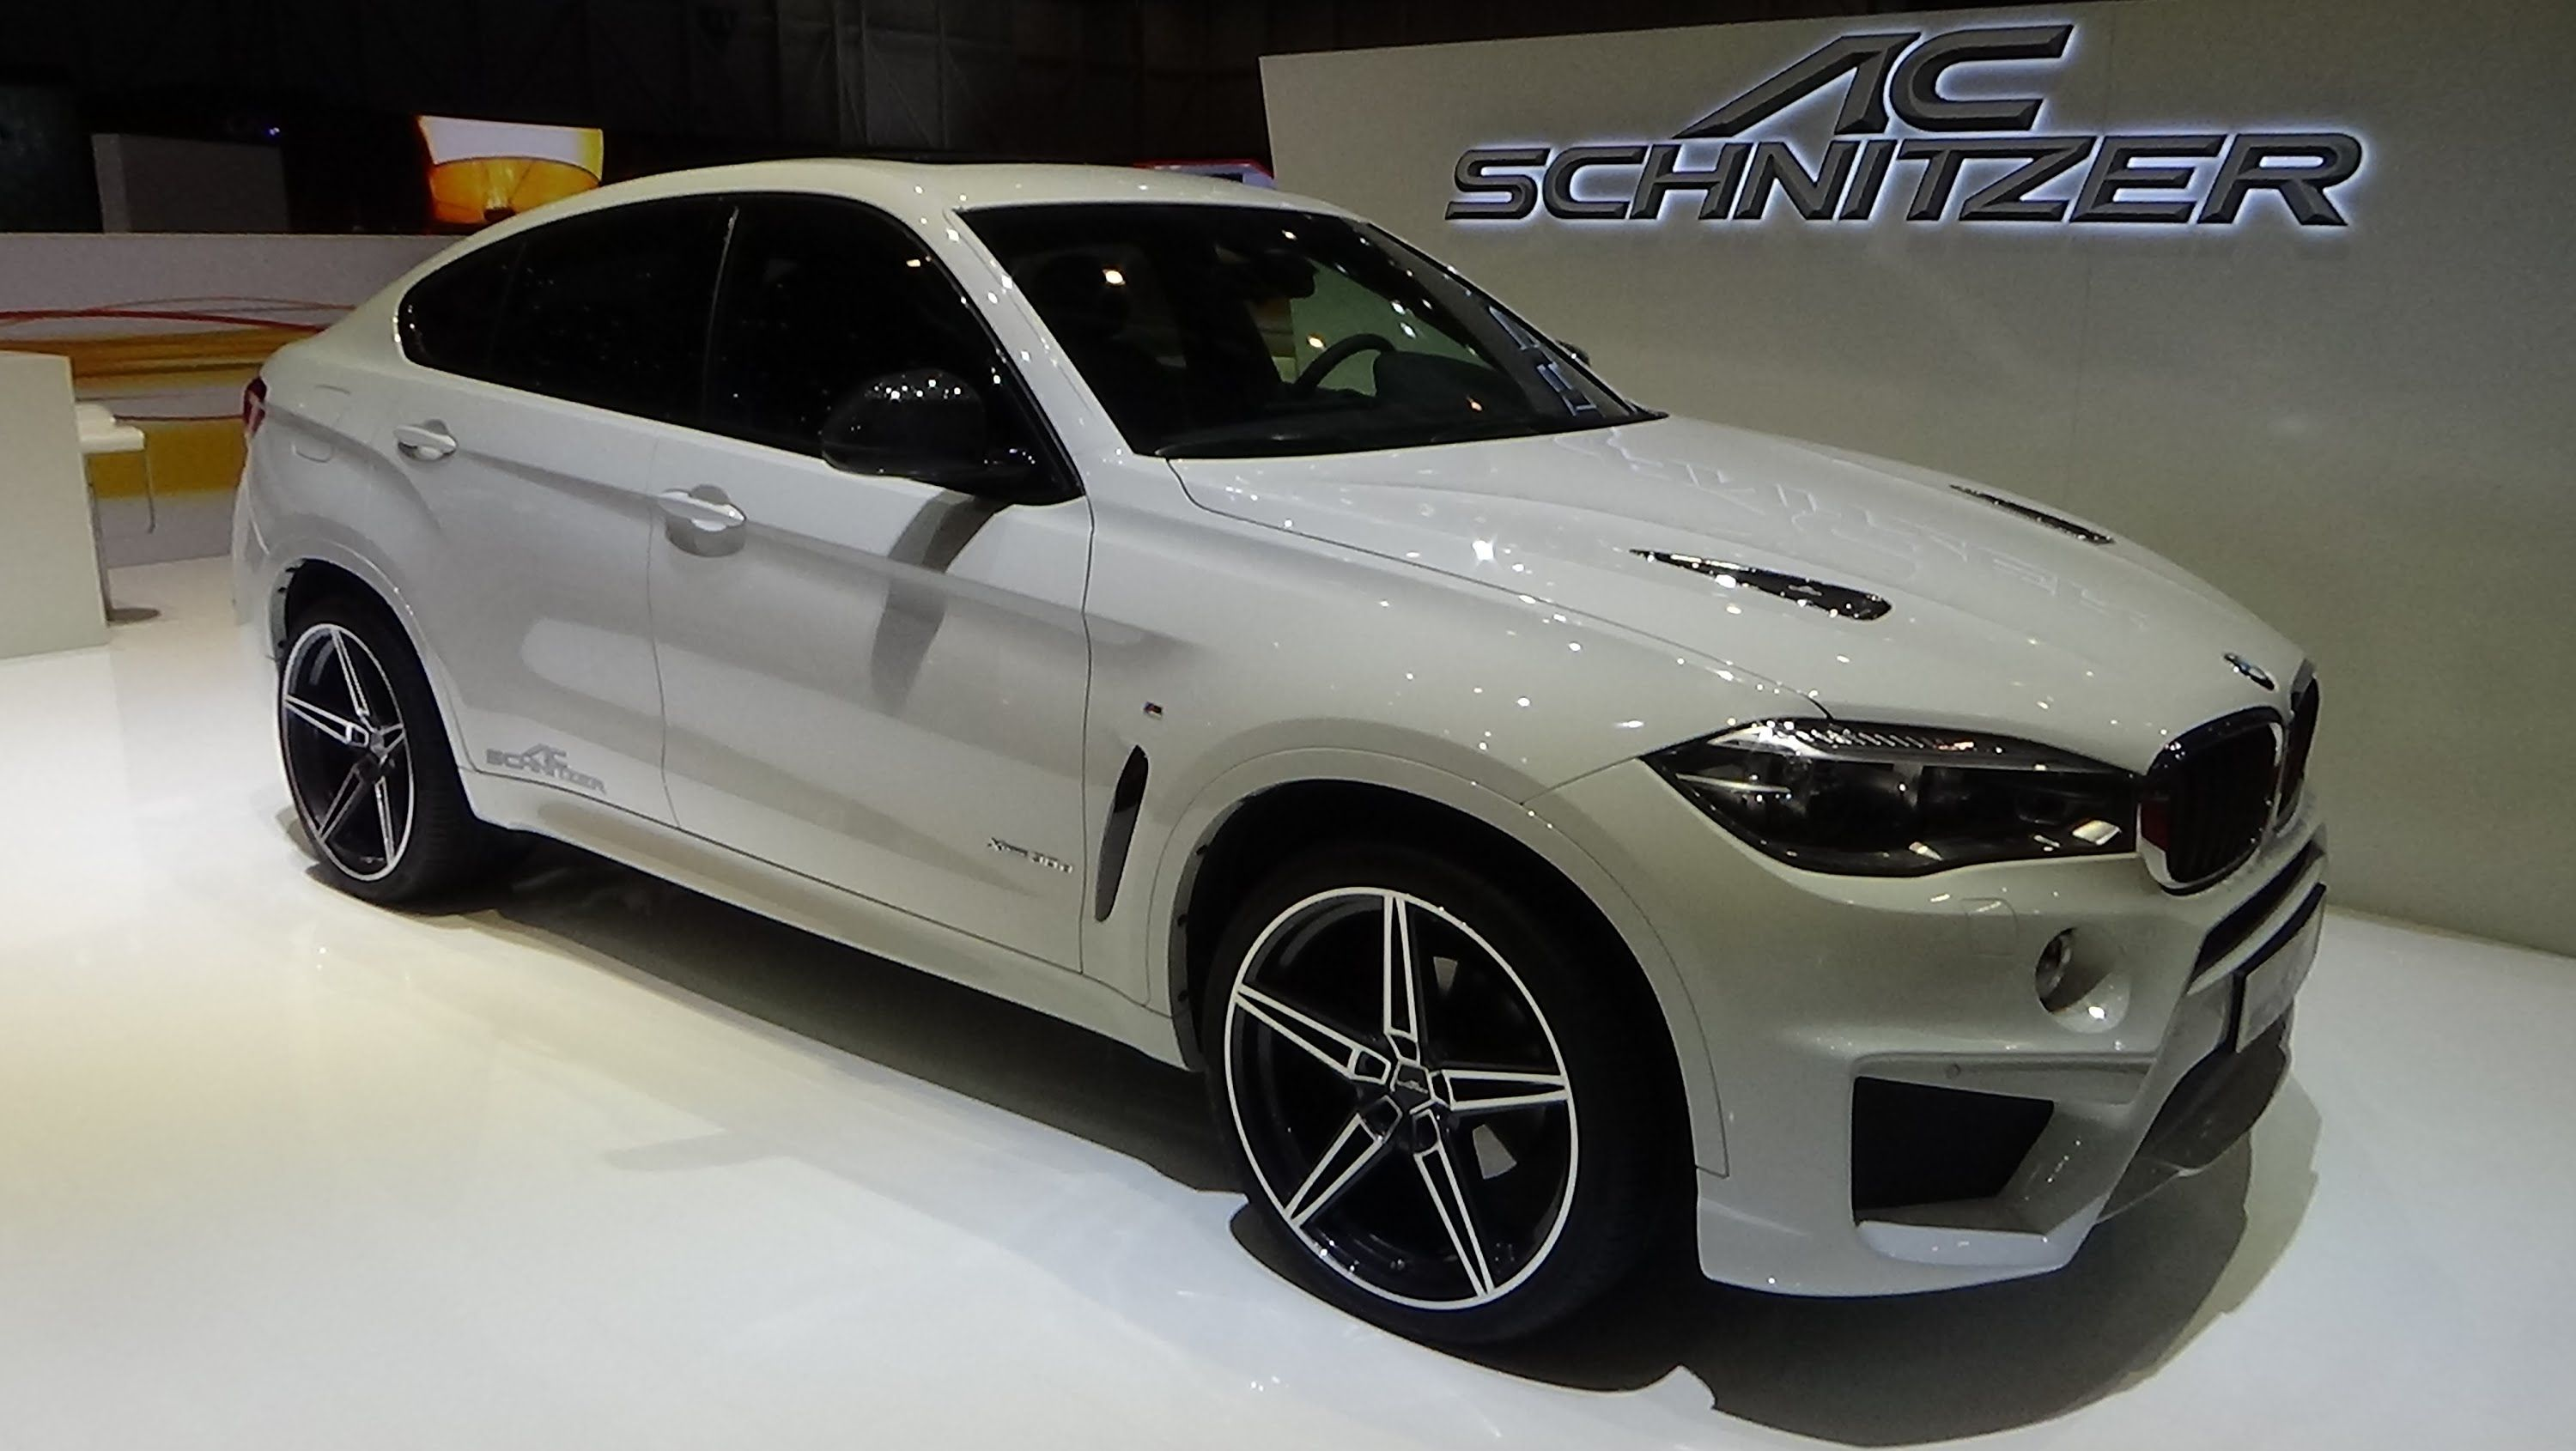 2019 bmw x6 release date auto cars pinterest bmw x6 bmw and cars